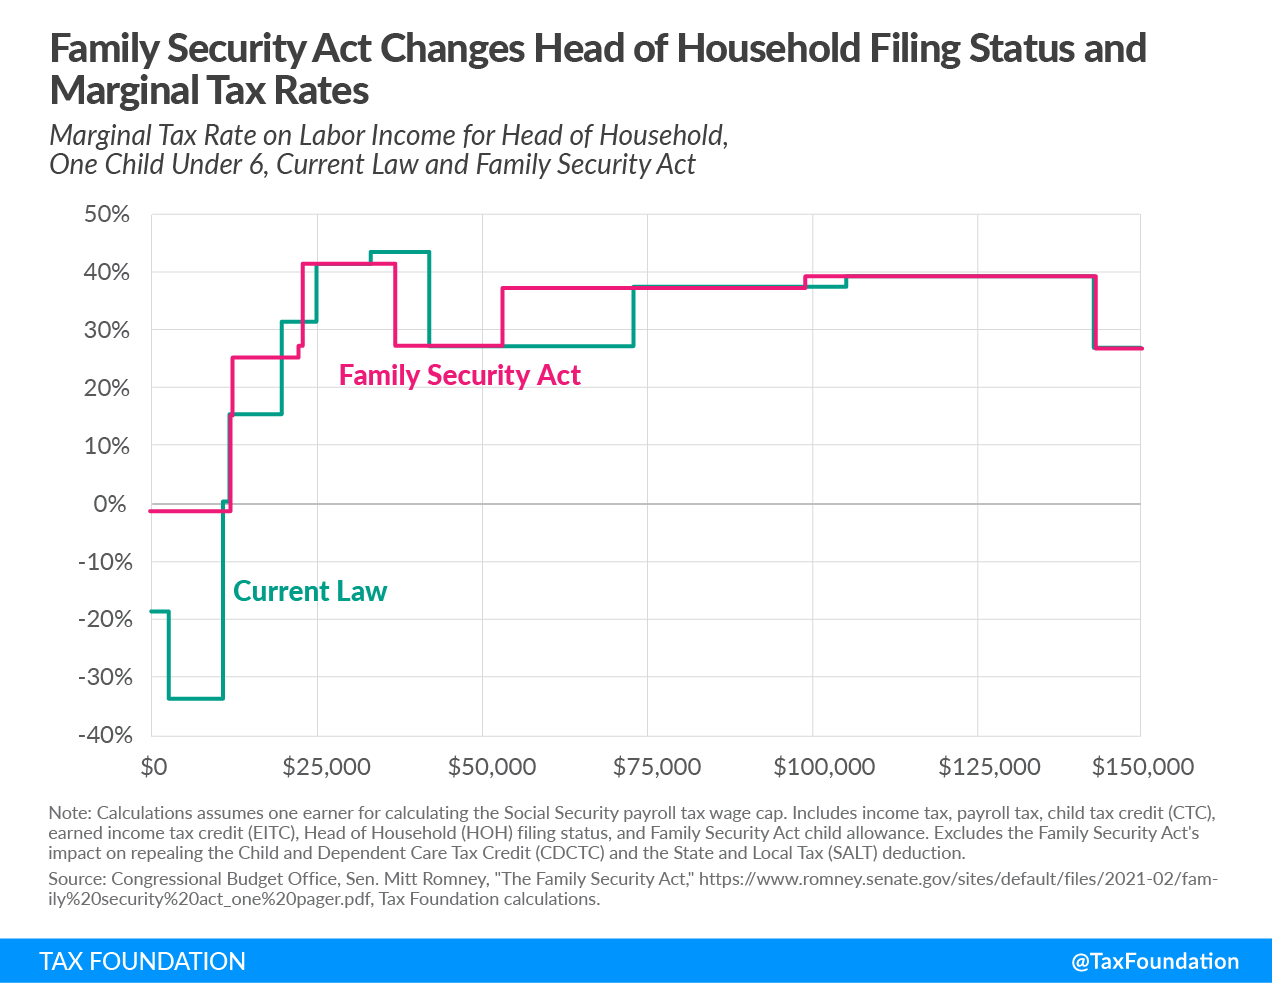 Head of Household Marginal Rates Comparison Under Current Law and Mitt Romney Family Security Act, 2021. Mitt Romney Child Tax Allowance